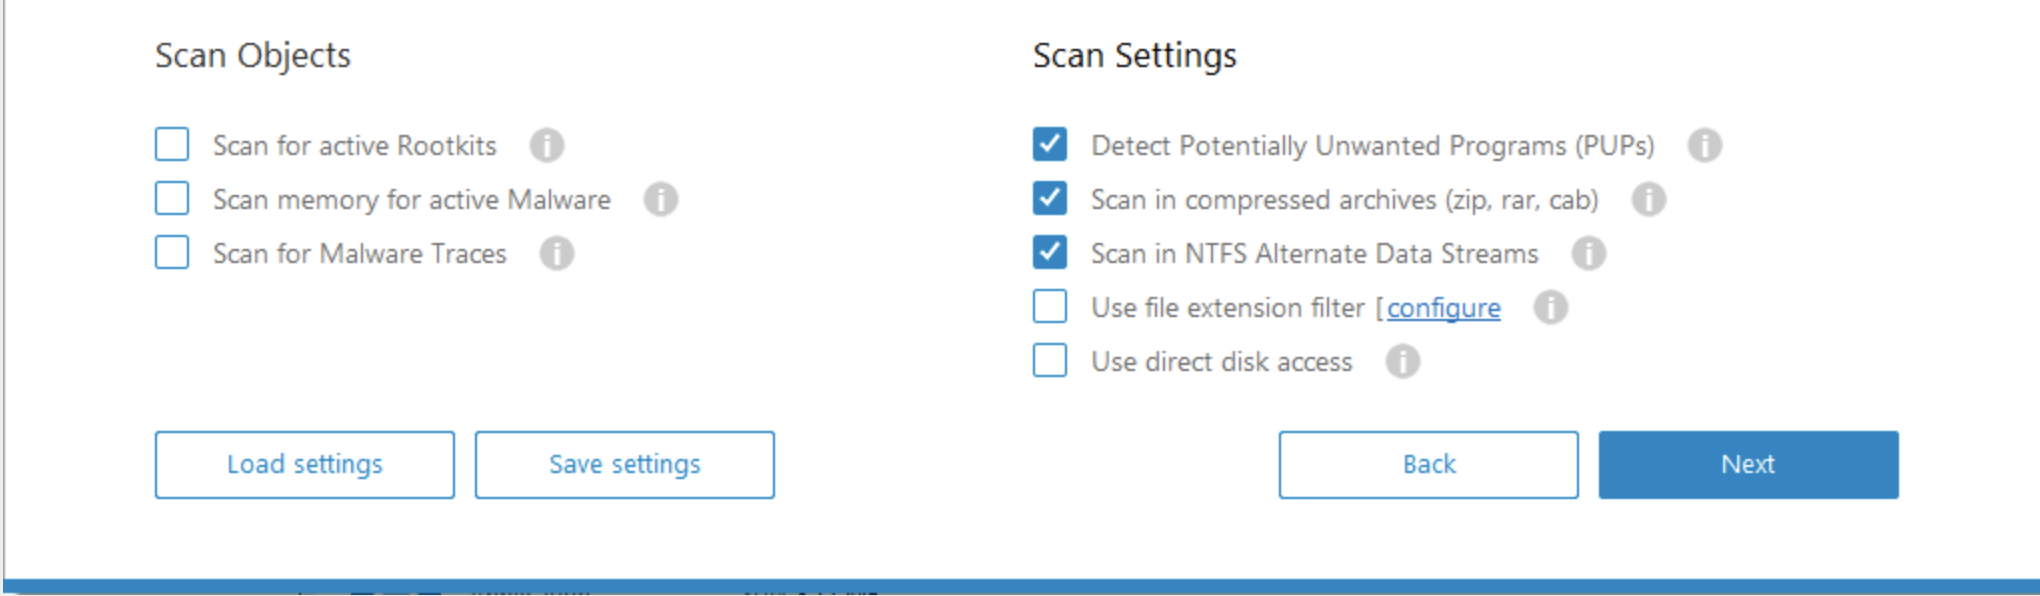 Emsisoft Scan Objects